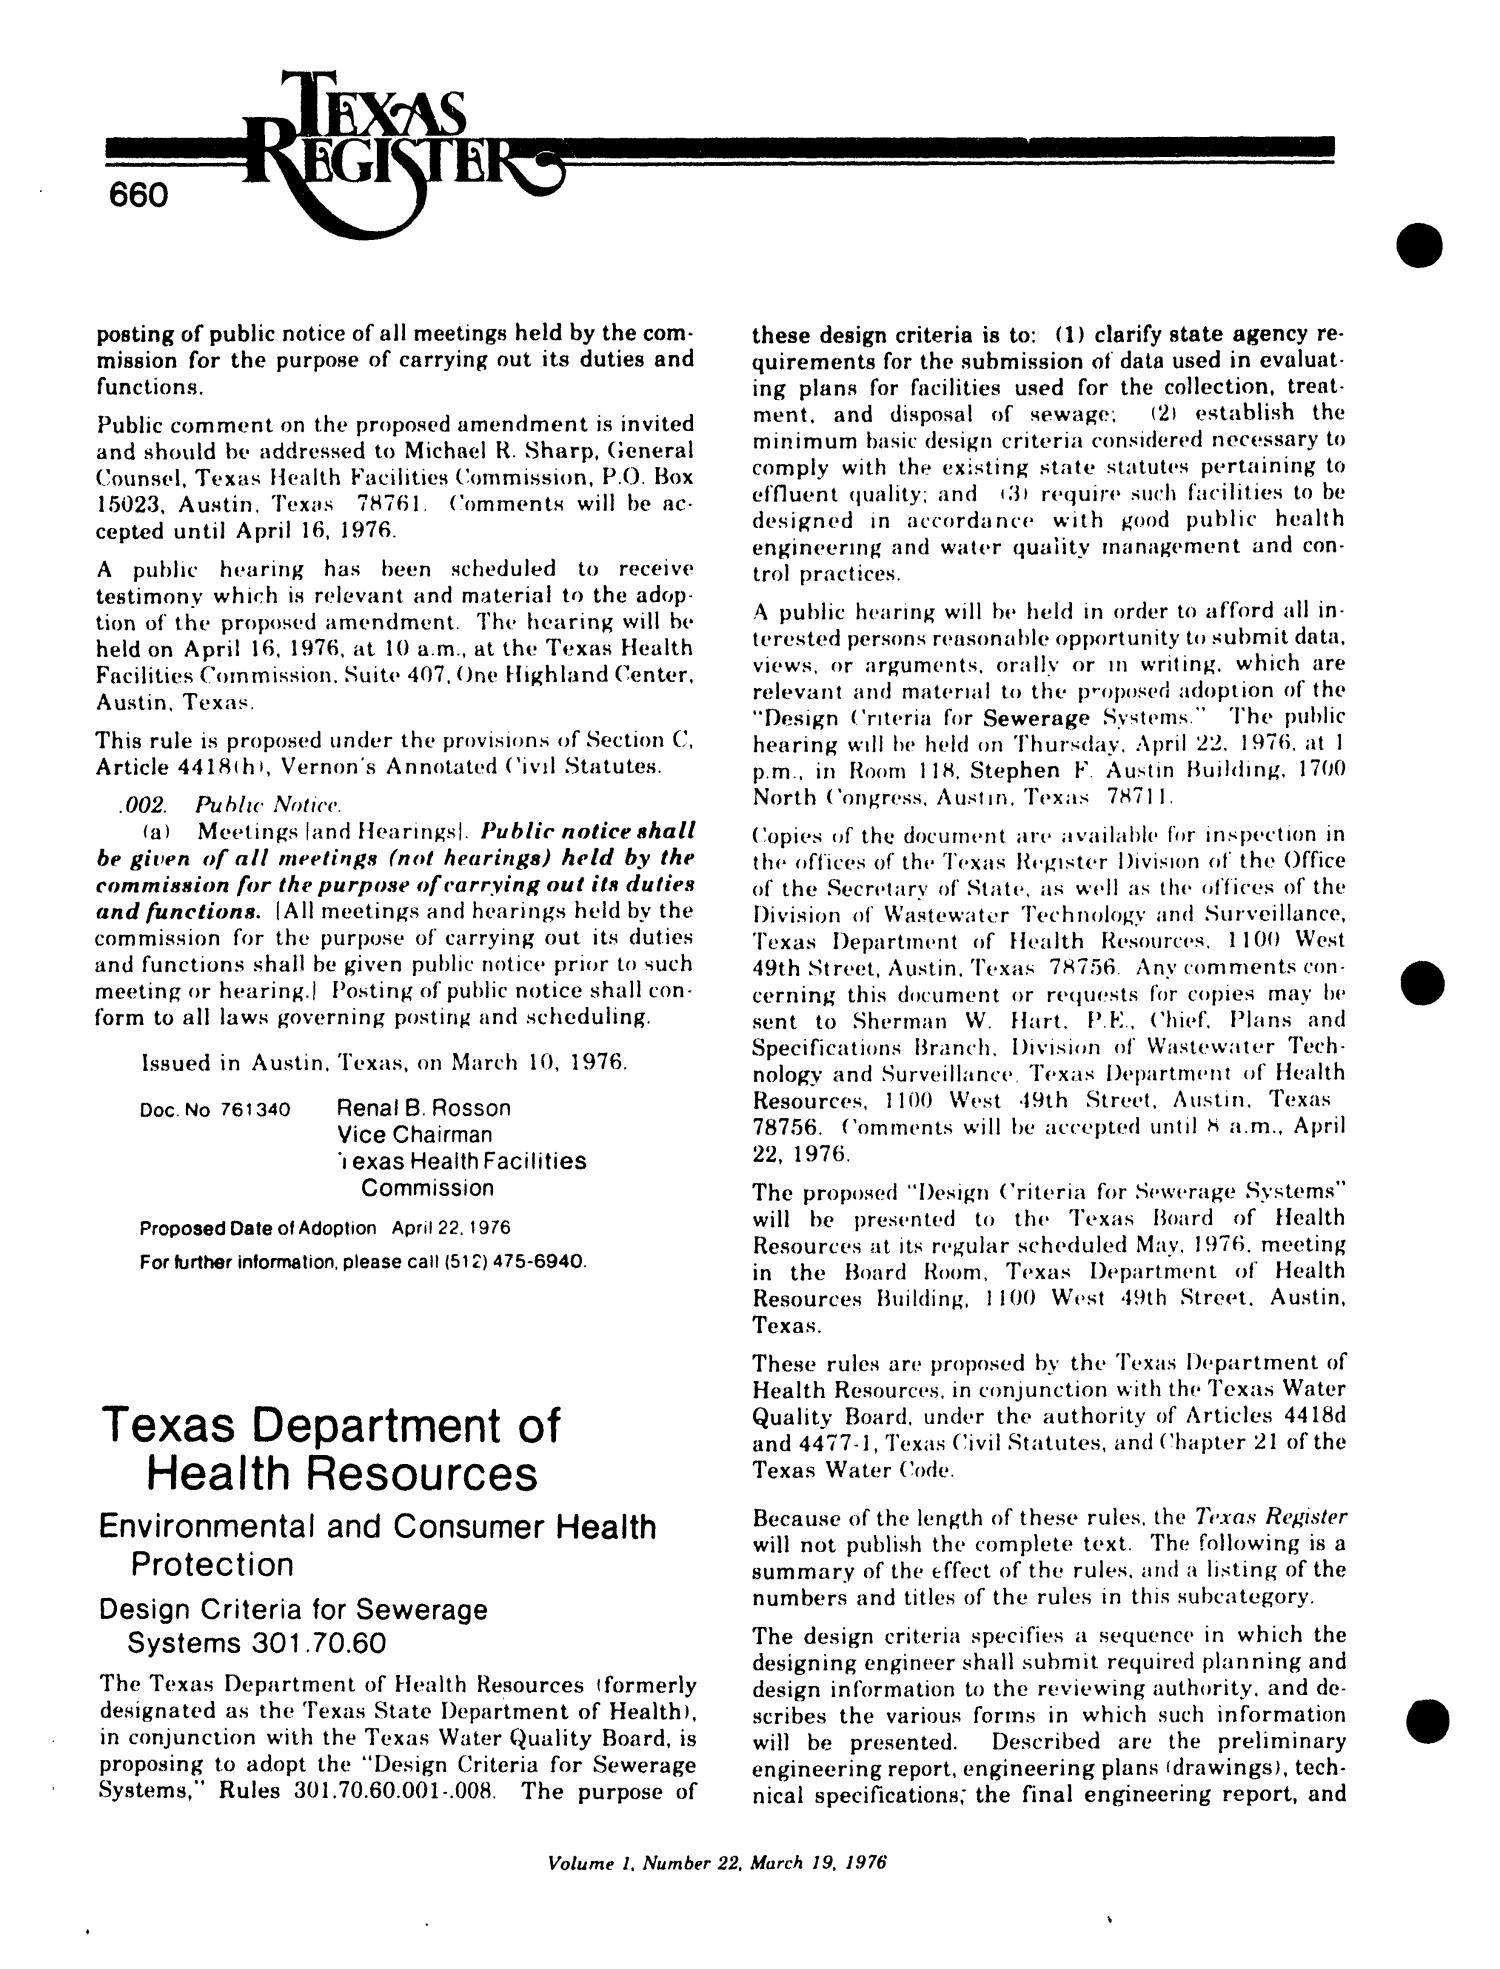 Texas Register, Volume 1, Number 22, Pages 651-678, March 19, 1976                                                                                                      660